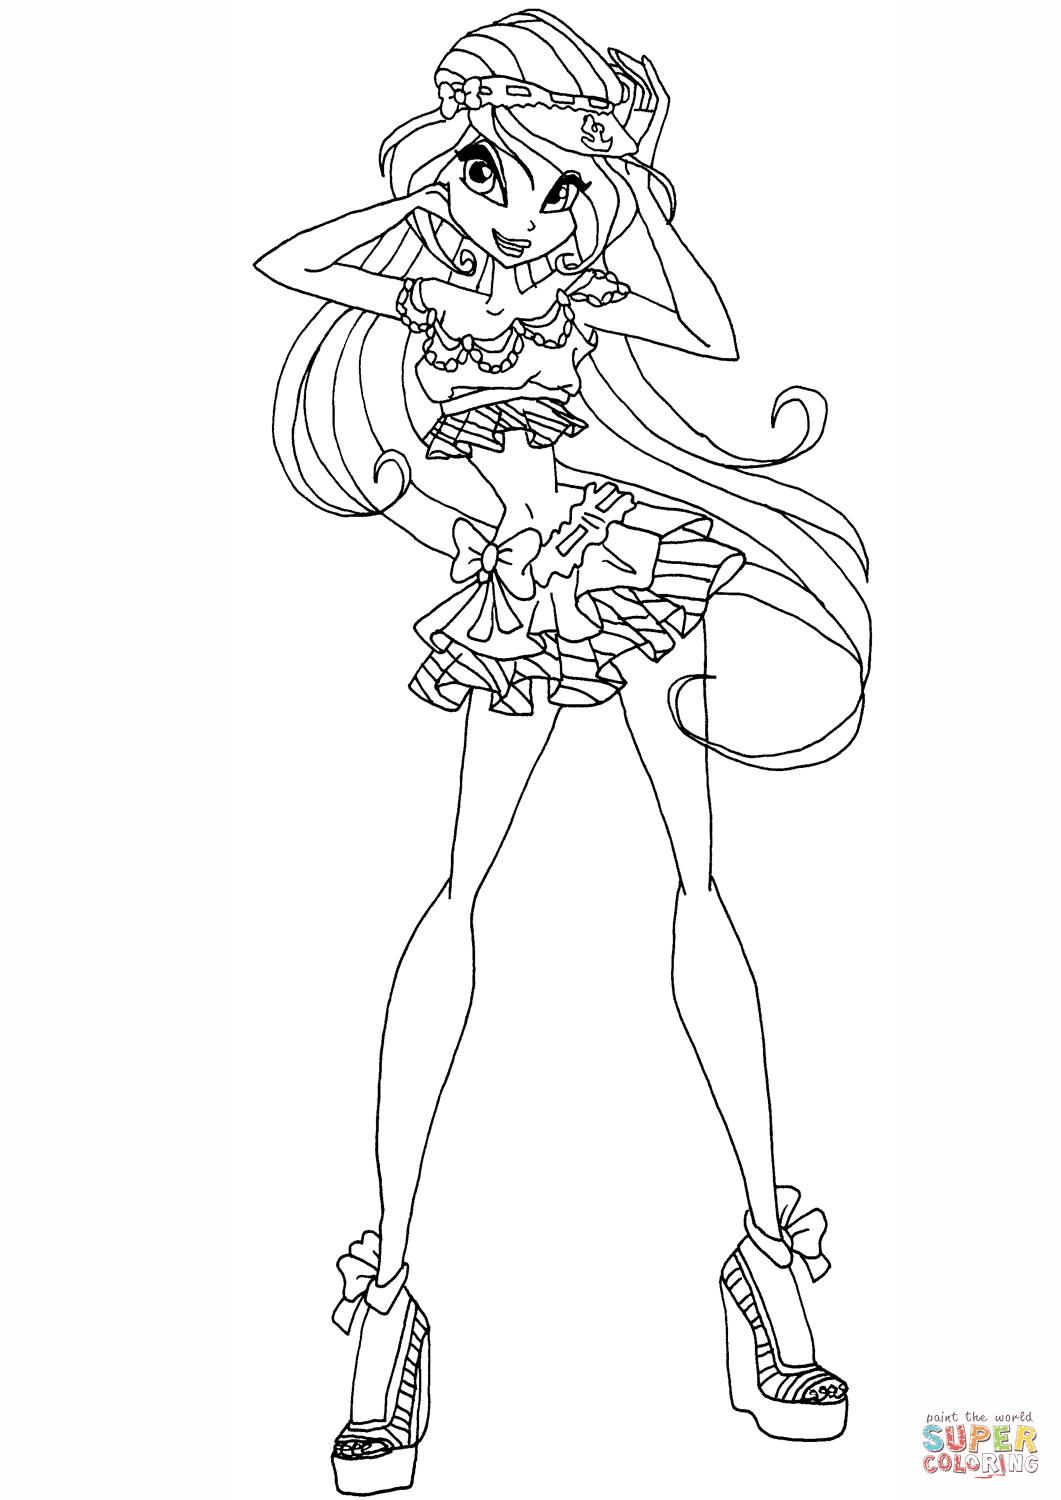 Princess Bloom Coloring Page Free Printable Coloring Pages